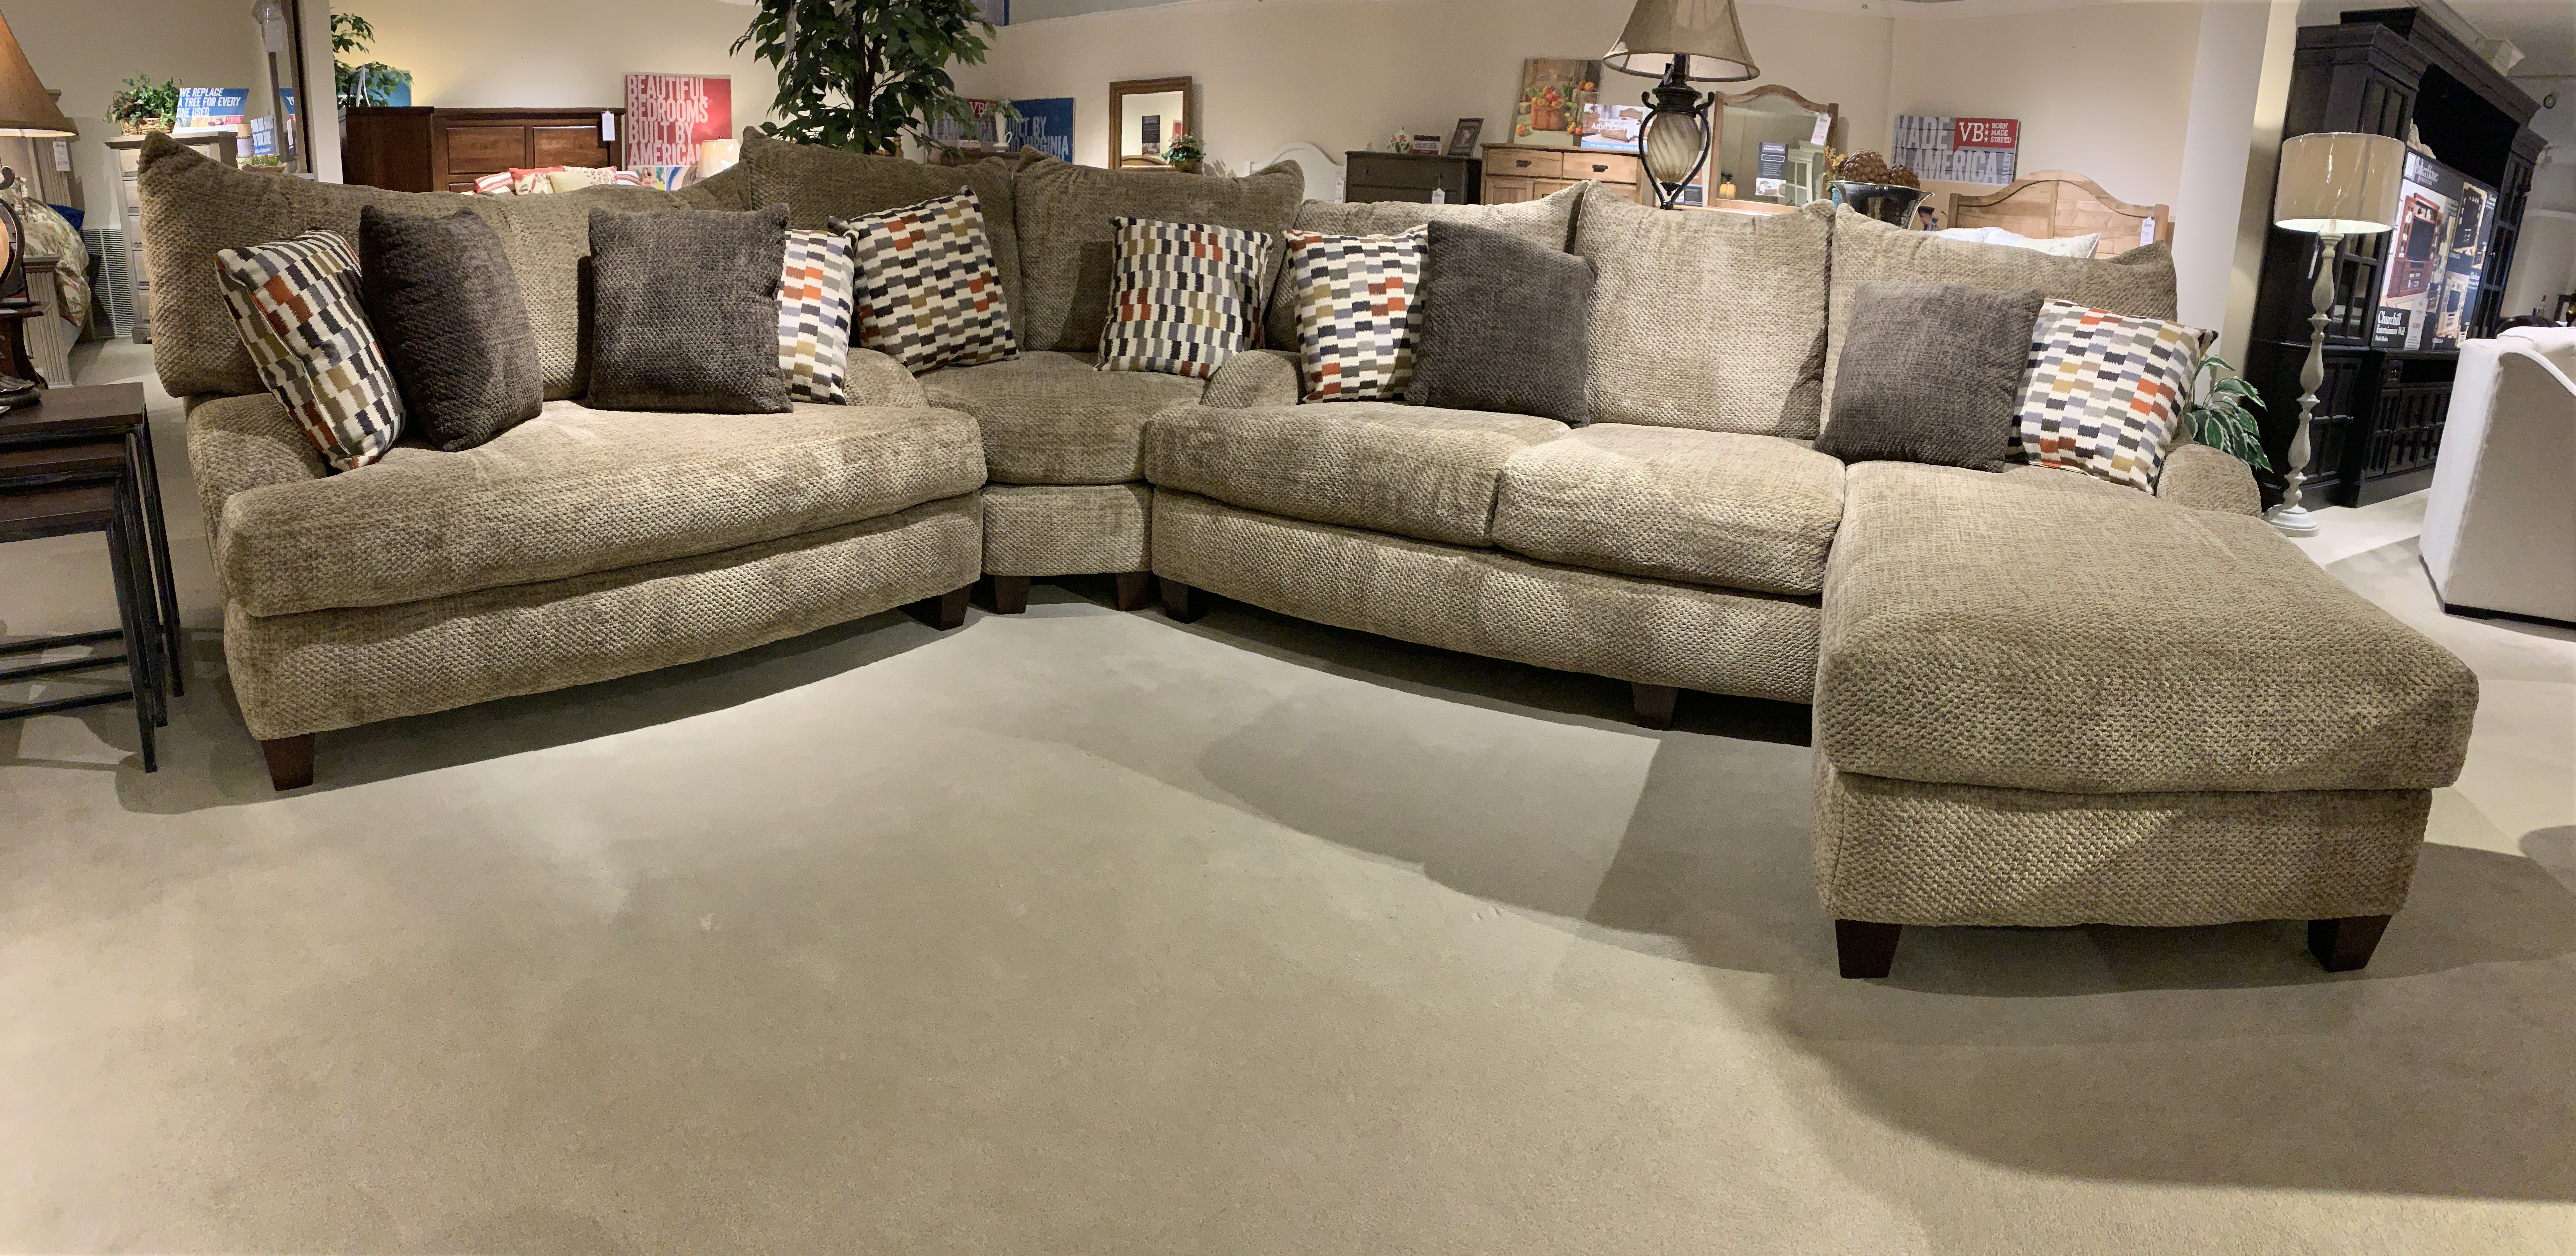 Refresh Your Living Room With Your Choice Of Pieces From The Catalina Collection By England The So Brick Living Room Trendy Living Rooms Living Room Sectional